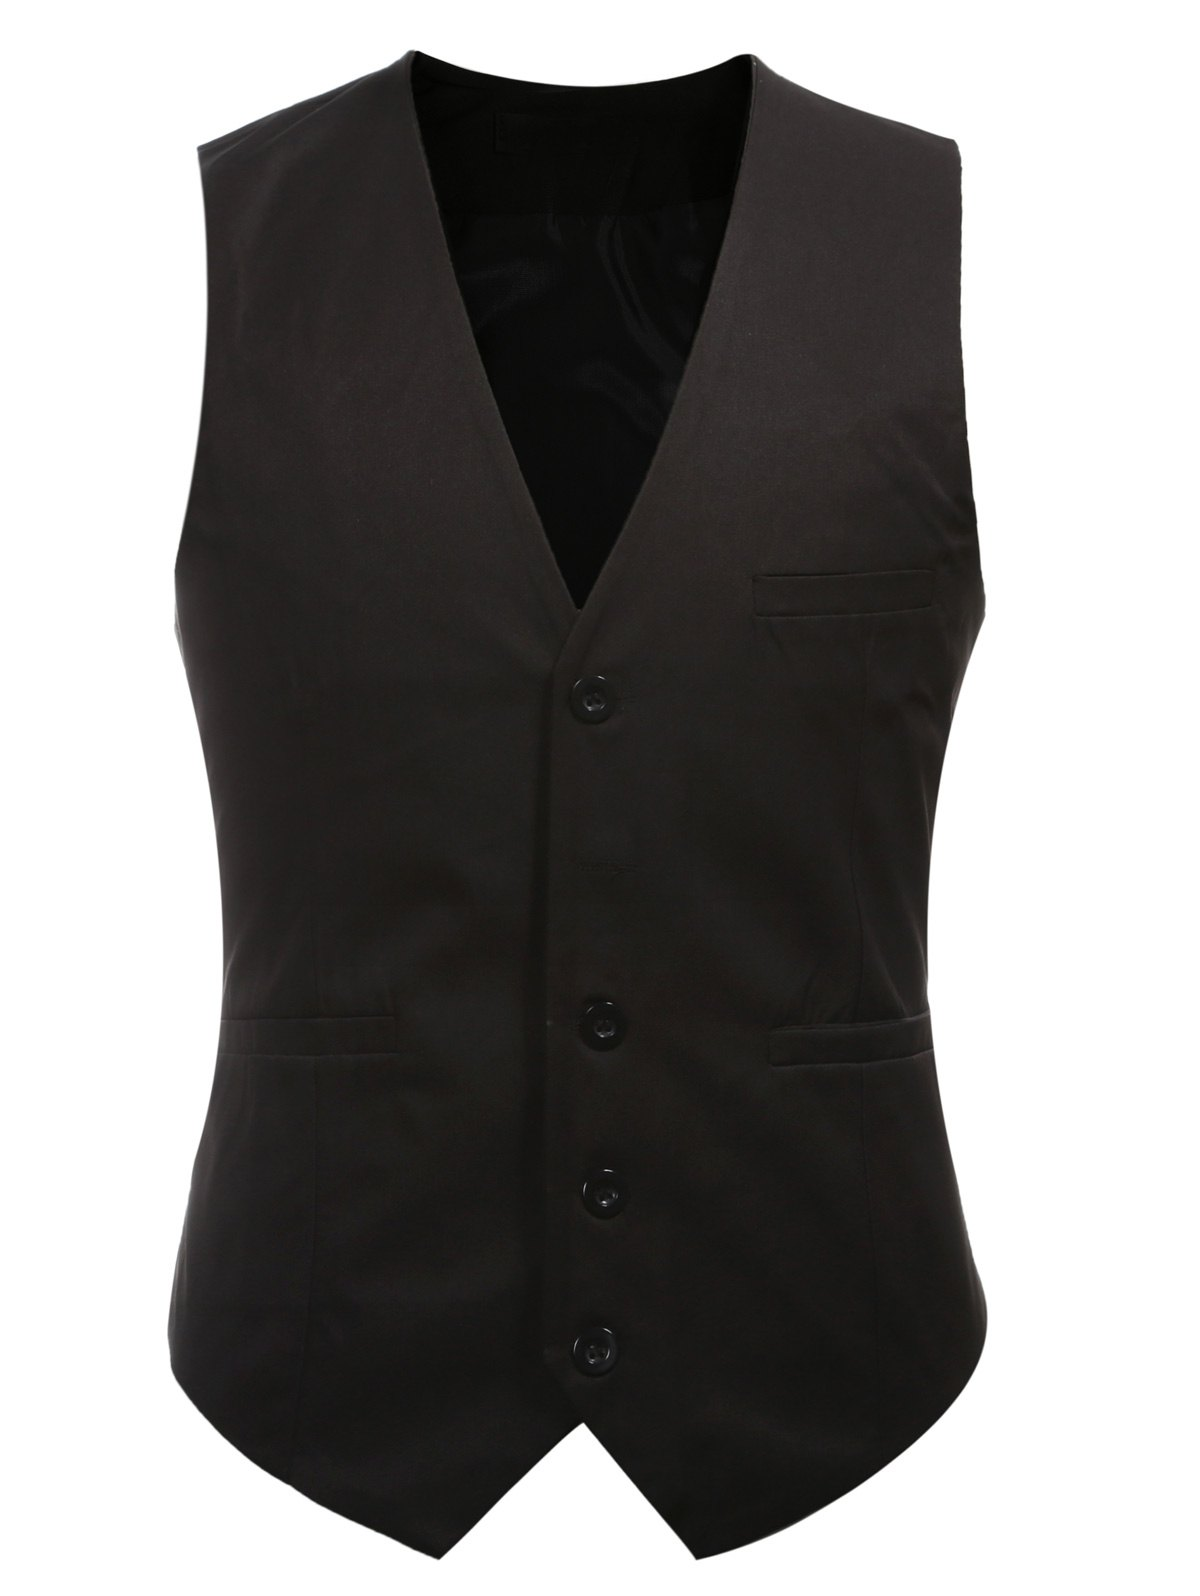 Buckle Back Solid Color Single Breasted Men's Vest - BLACK 3XL